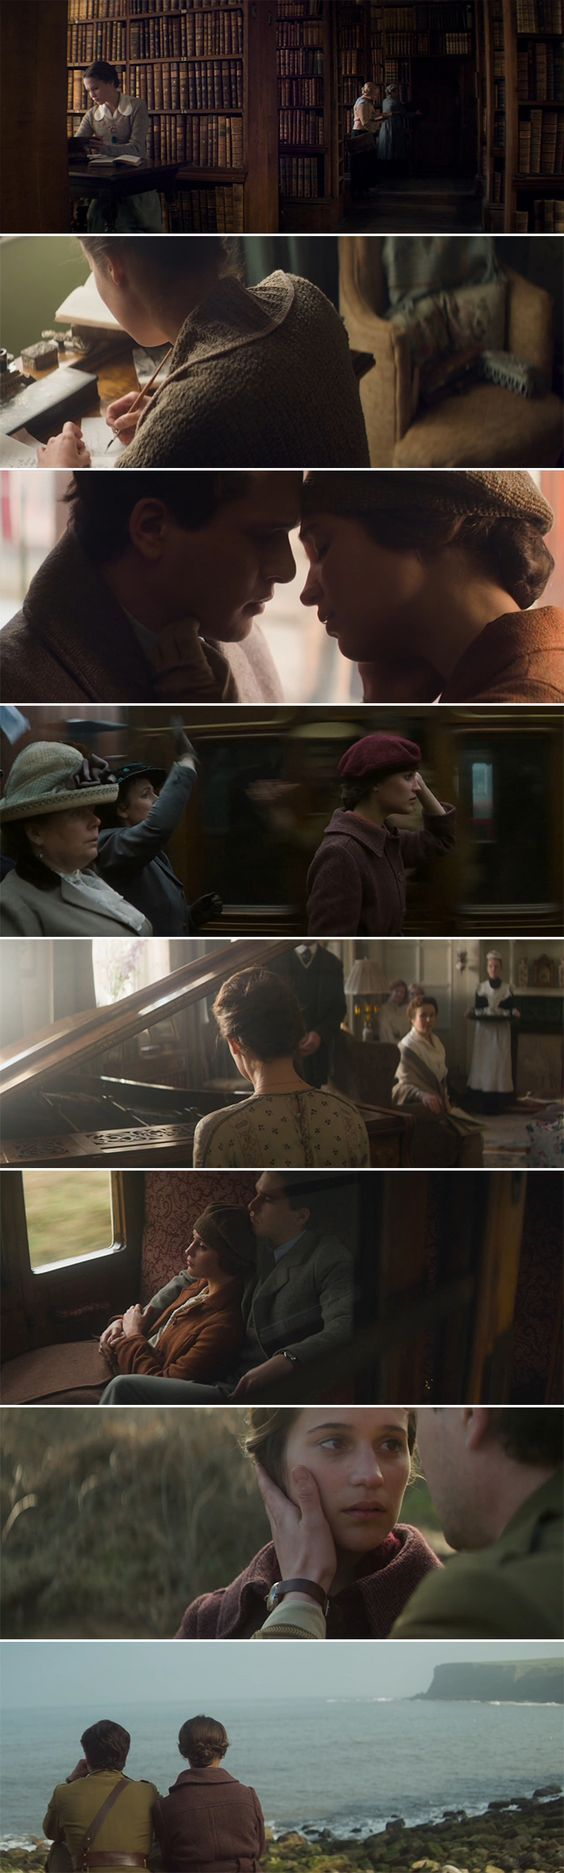 """Absolutely incredible cinematography in """"The testament of youth"""". Each frame…"""